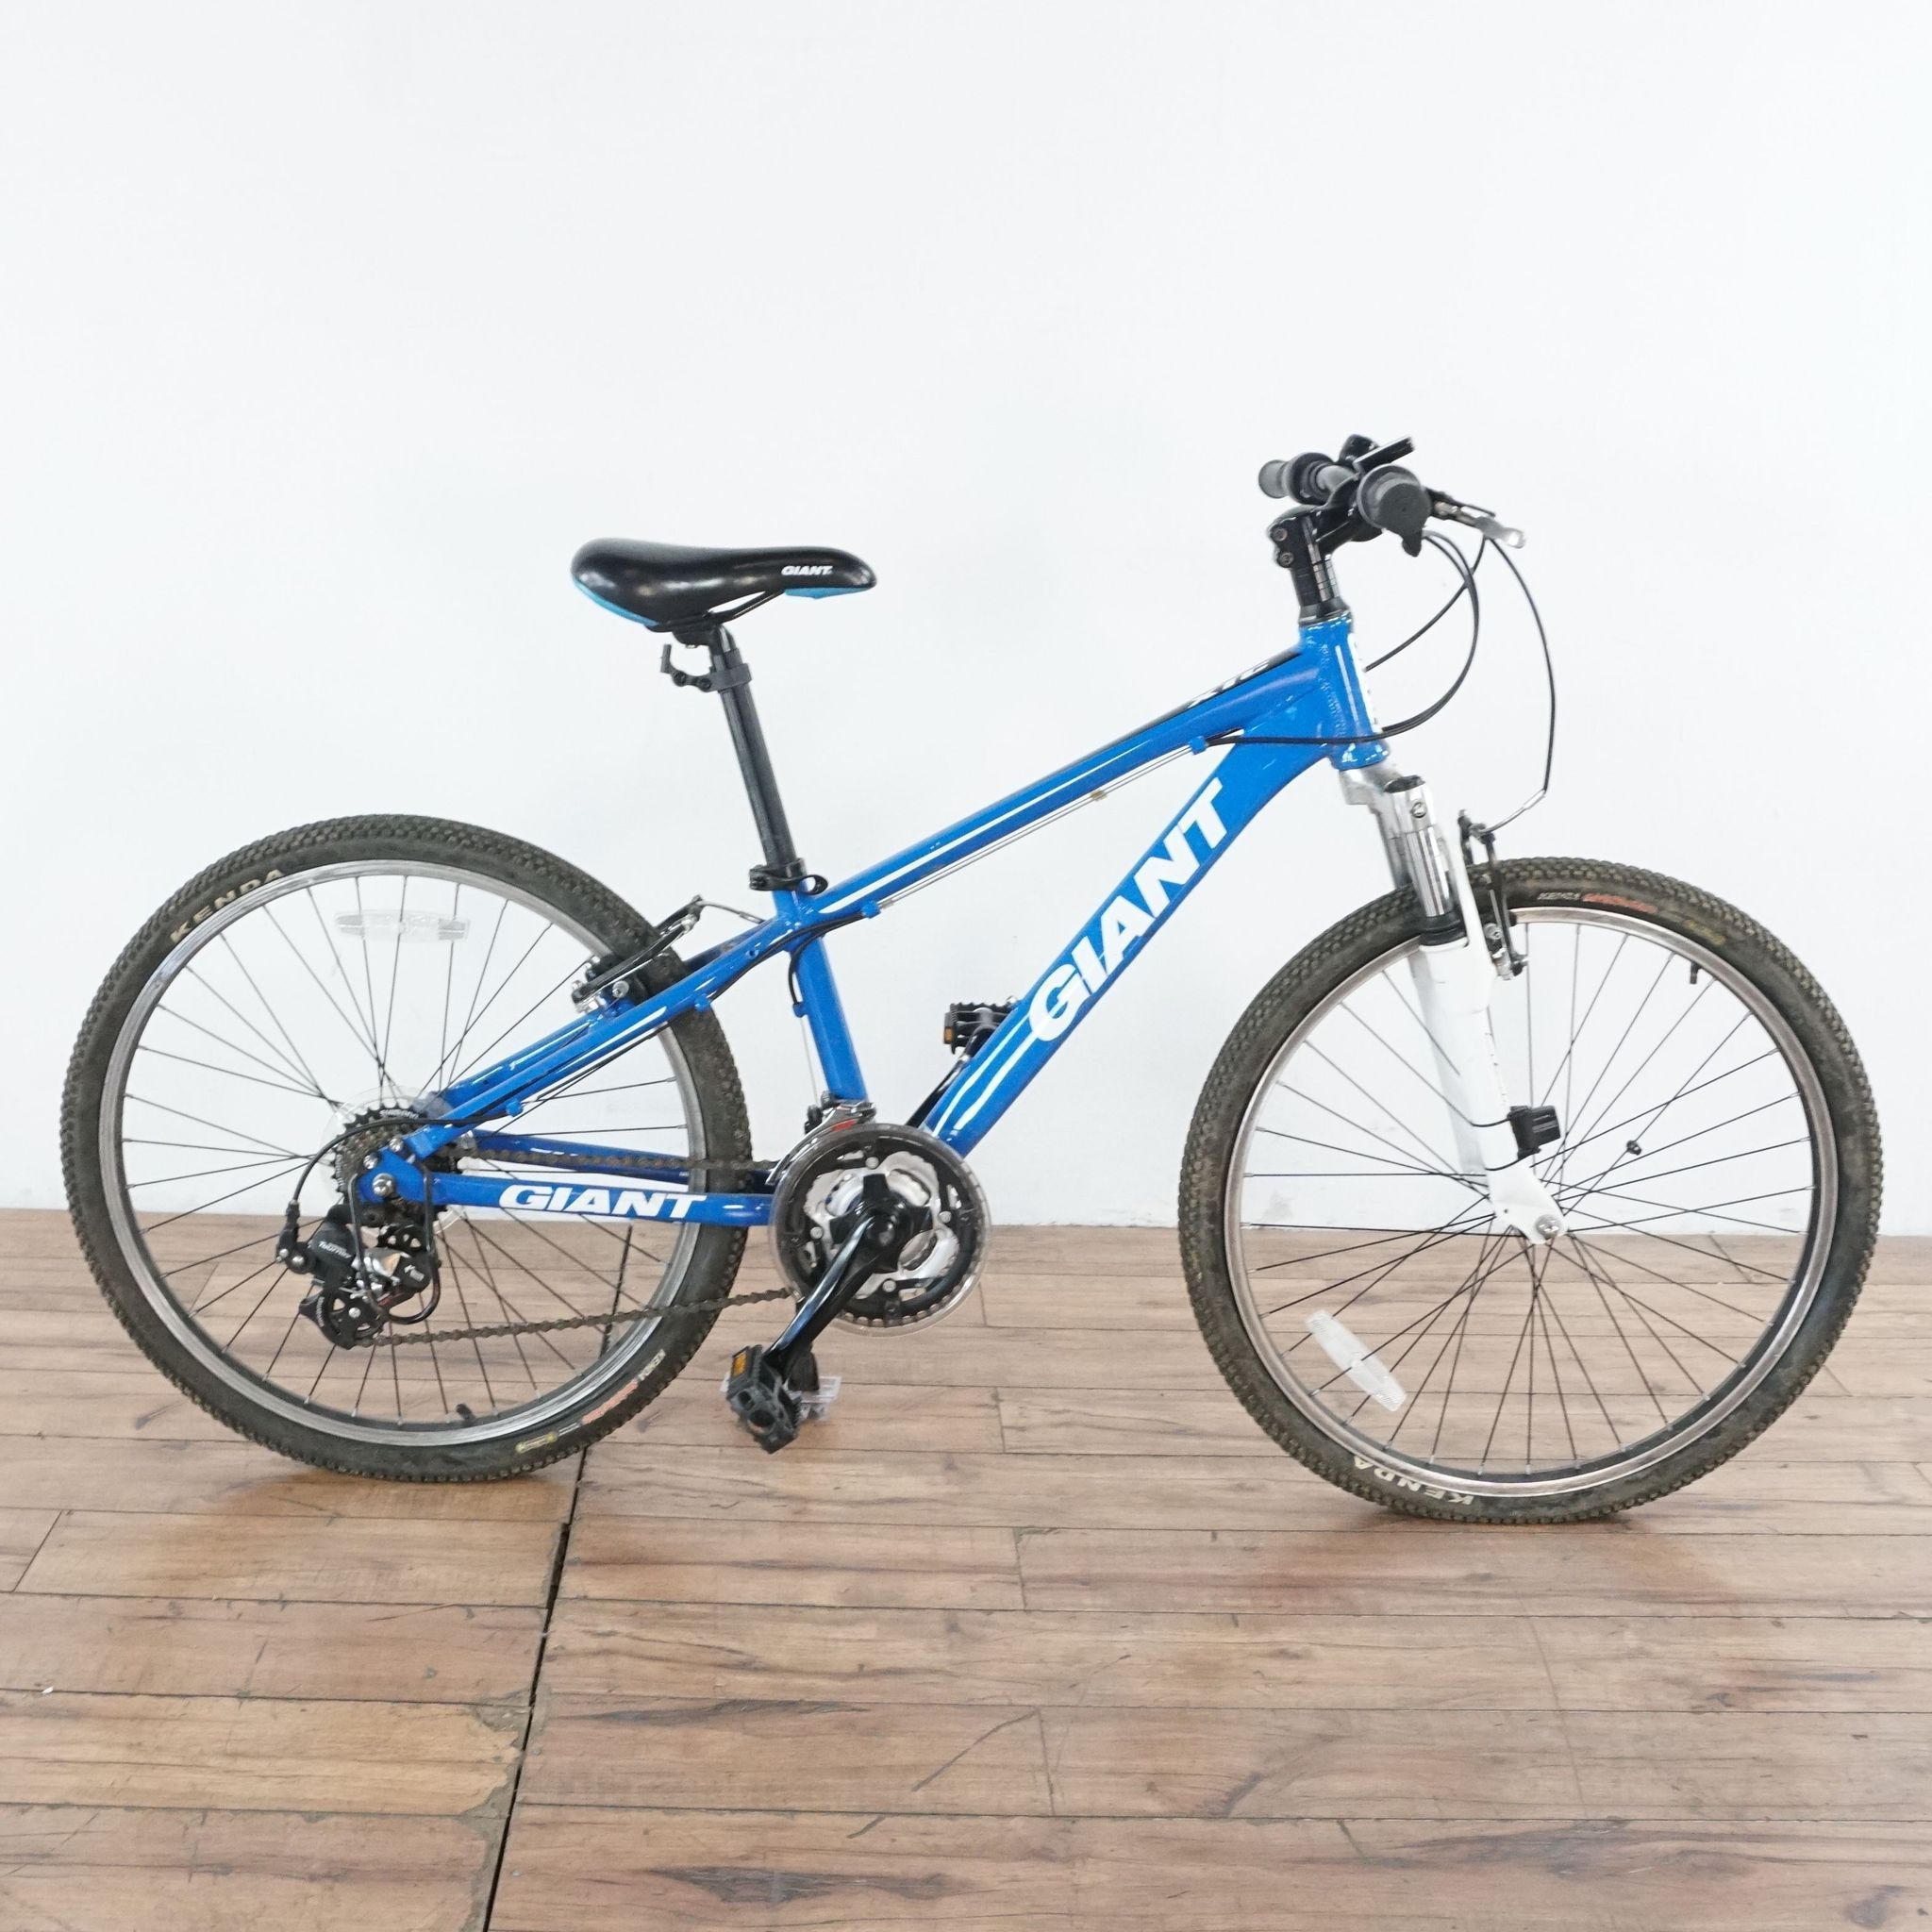 Blue Giant Bike In 2020 Giant Bikes Bike Giants